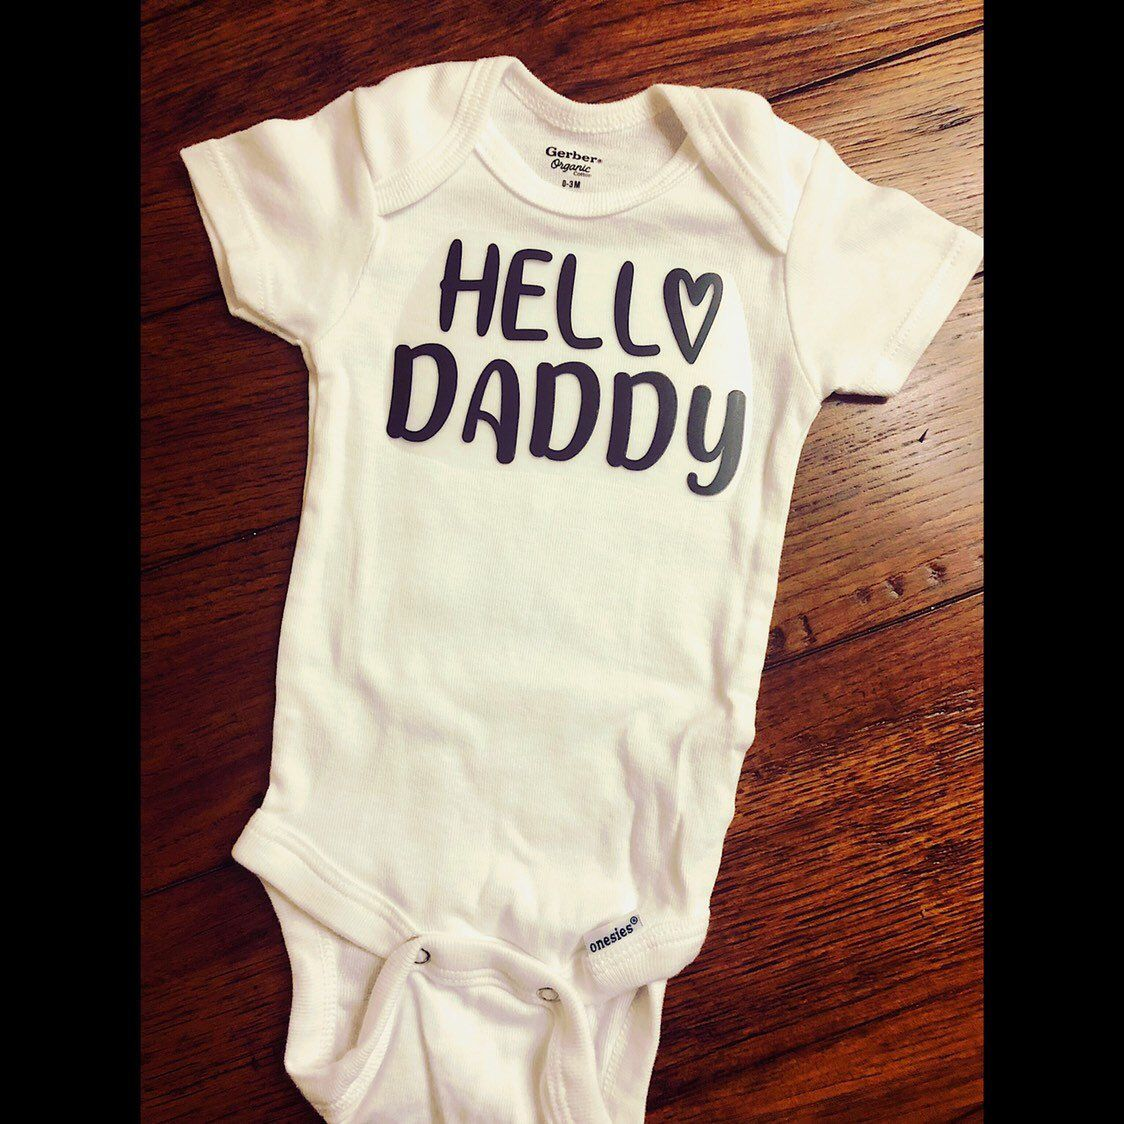 9dbe4bae4 ... my #etsy shop: Hello Daddy - baby reveal onesie - pregnancy announcement  to husband - new dad reveal onesie - announcement onesie - new dad gift -  hello